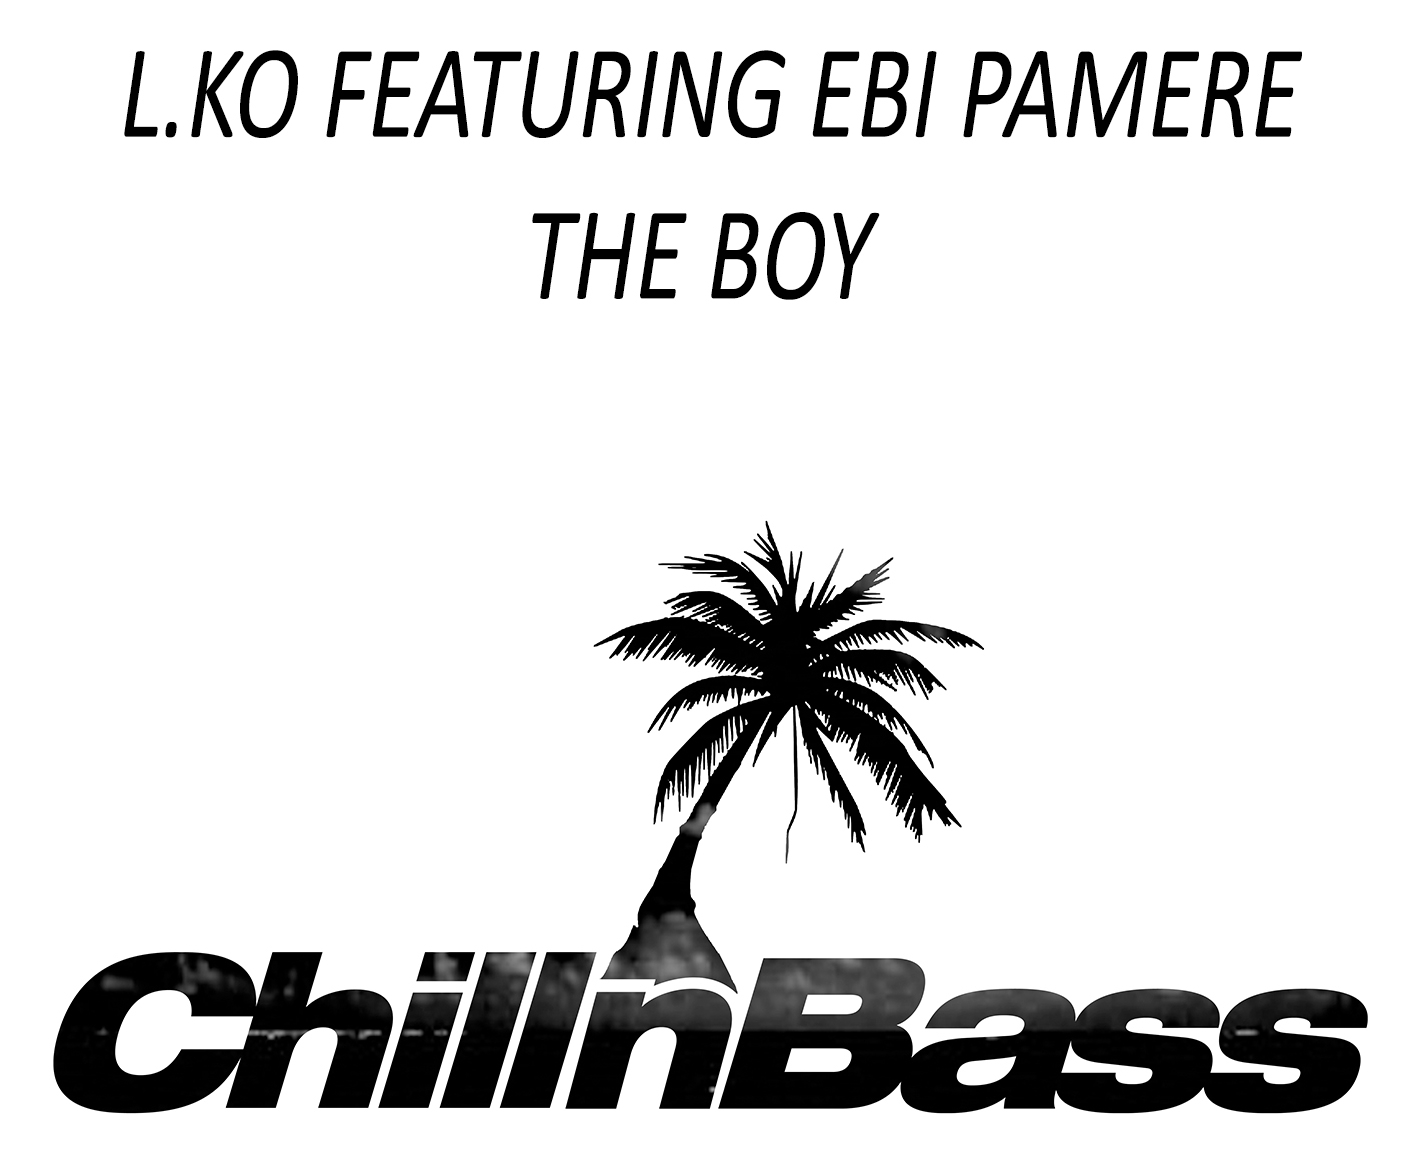 Chill N bass L.KO FEAT EBI PAMERE THE BOY Artwork.jpg